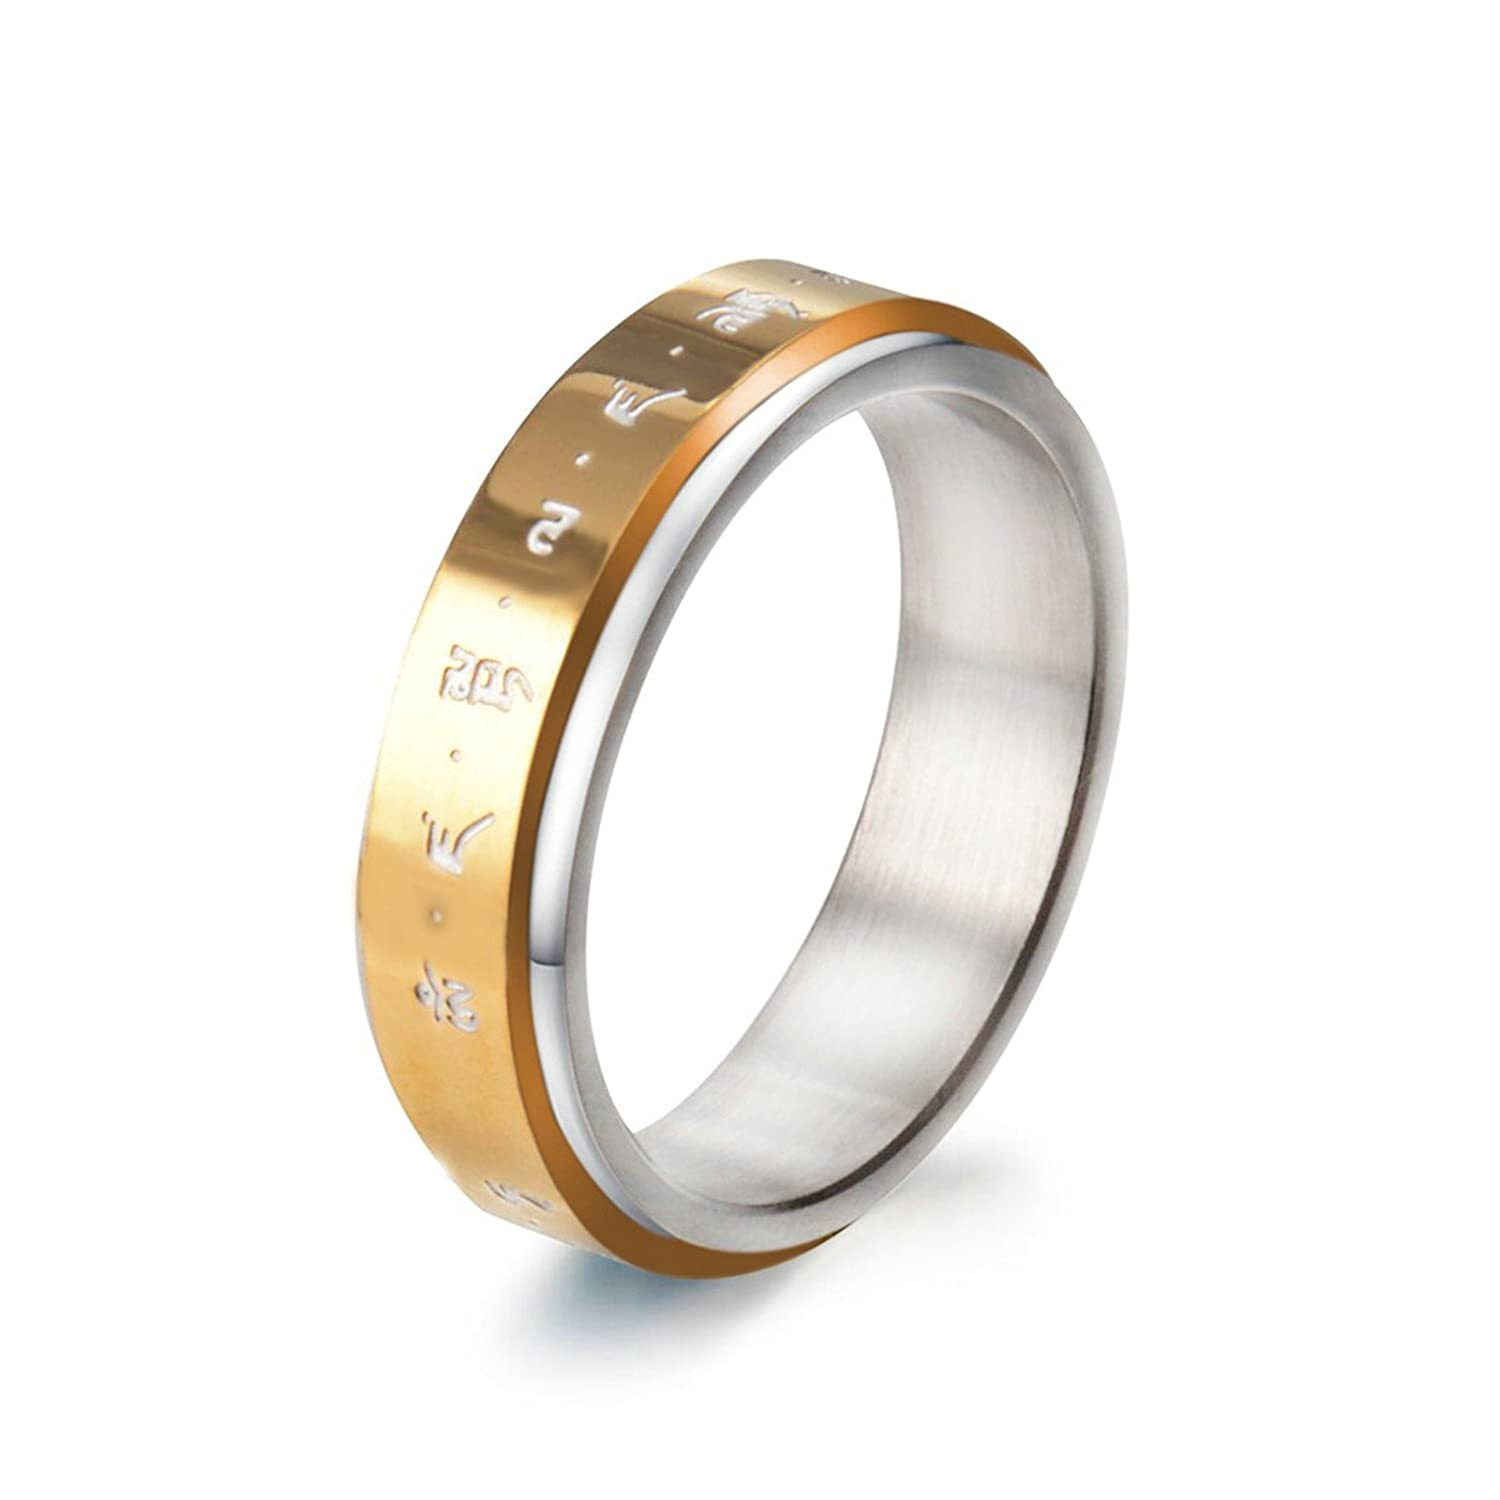 Bishilin Stainless Steel Rings Vintage with Mantra Width 6 Mm Round Wedding Ring Men Gold Size 8